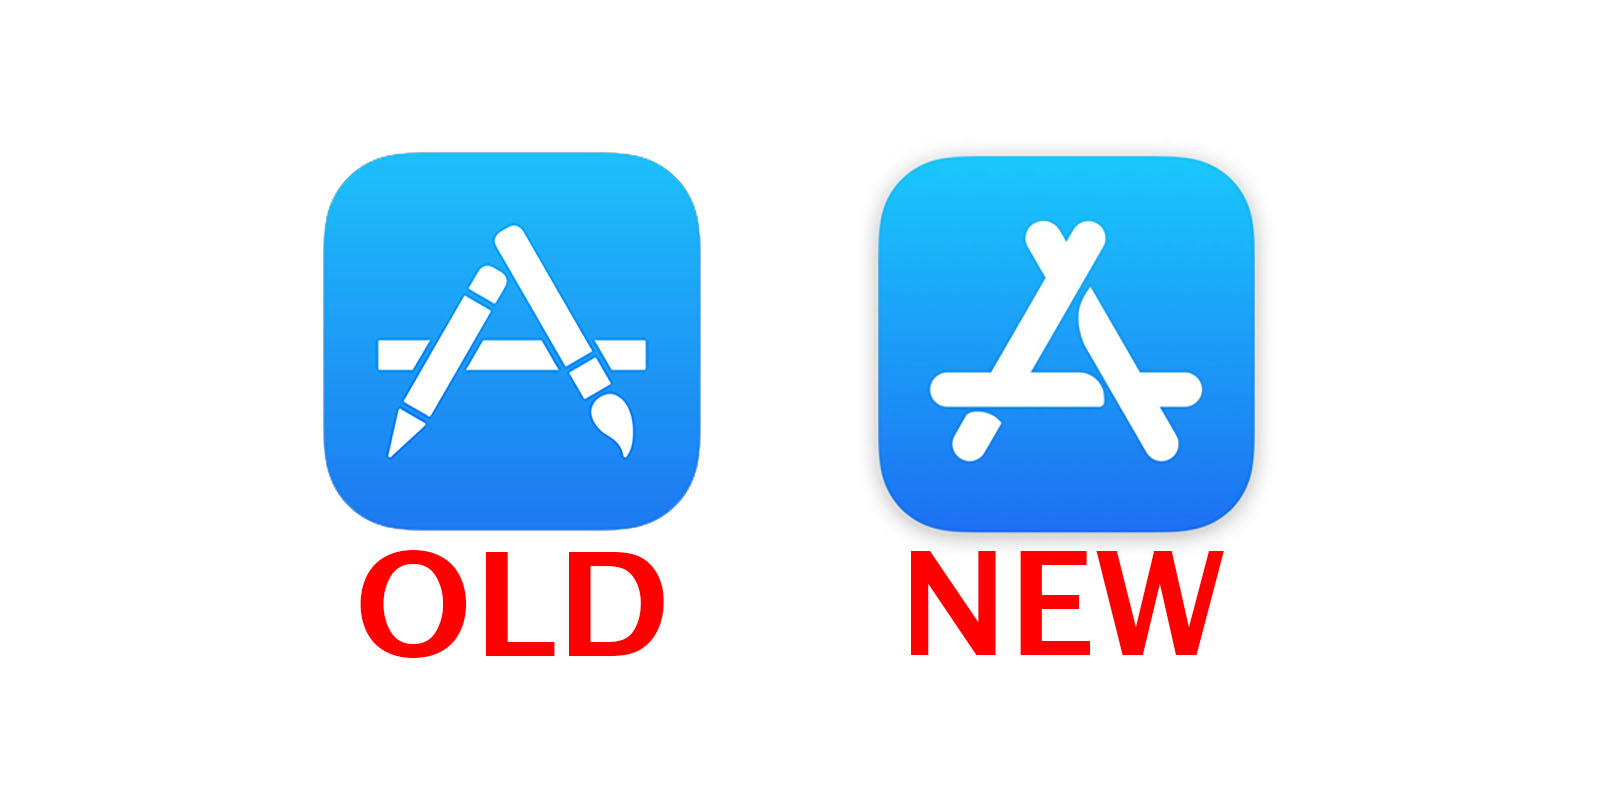 Apple just changed the App Store icon for the first time in.